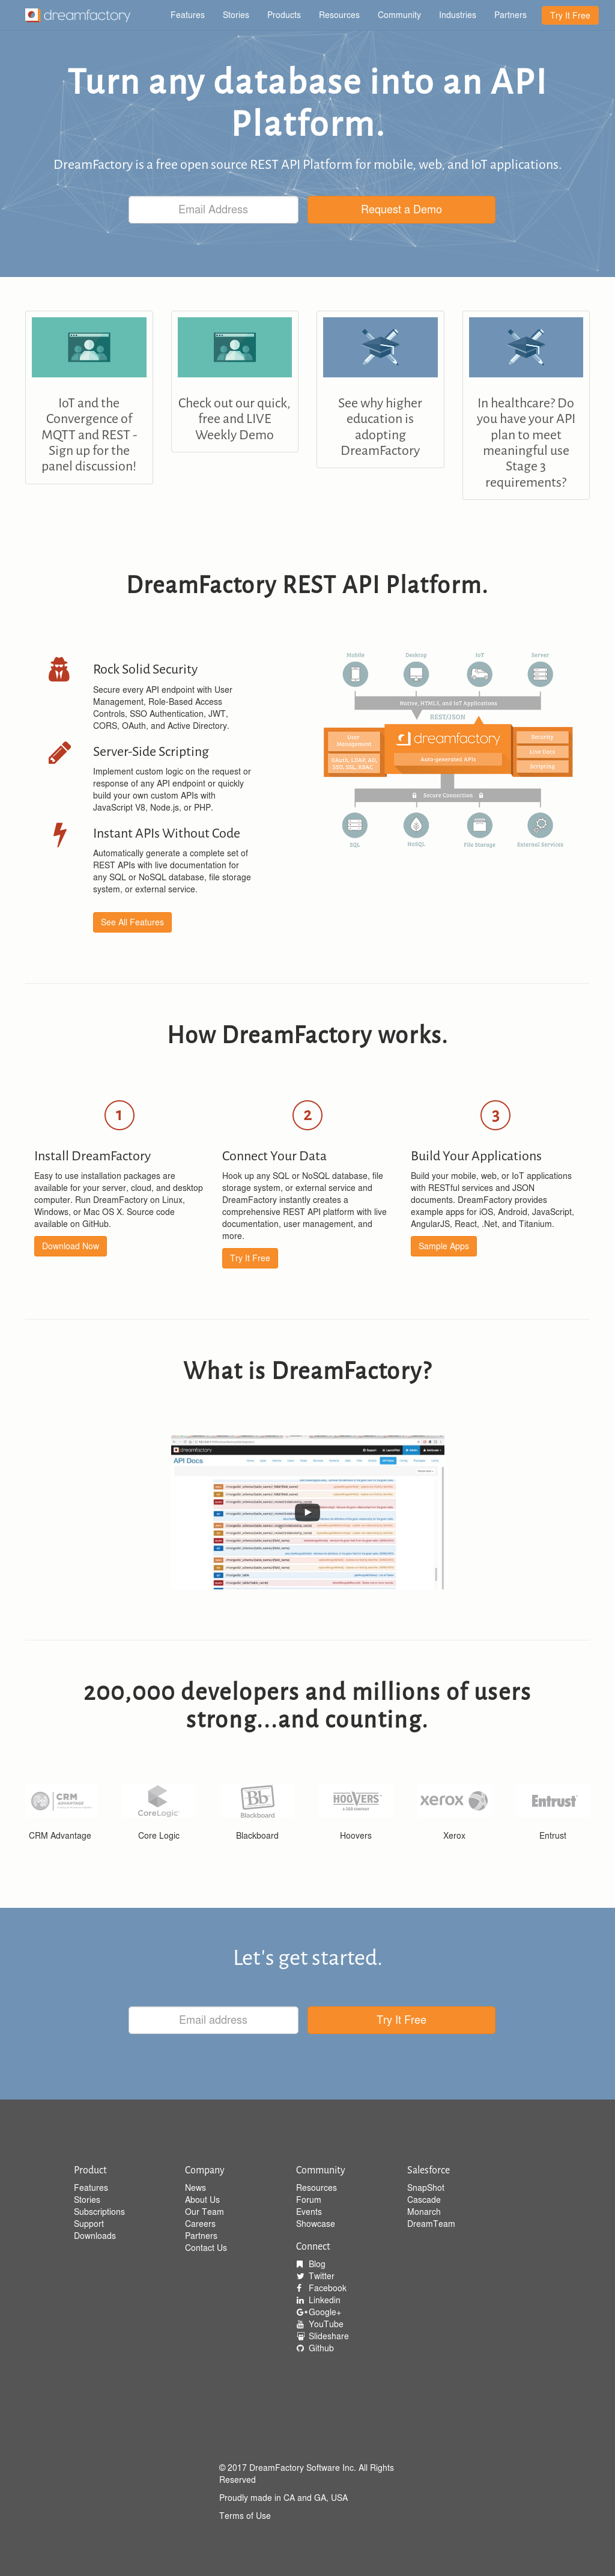 Dream Factory's Latest News, Blogs, Press Releases & Videos